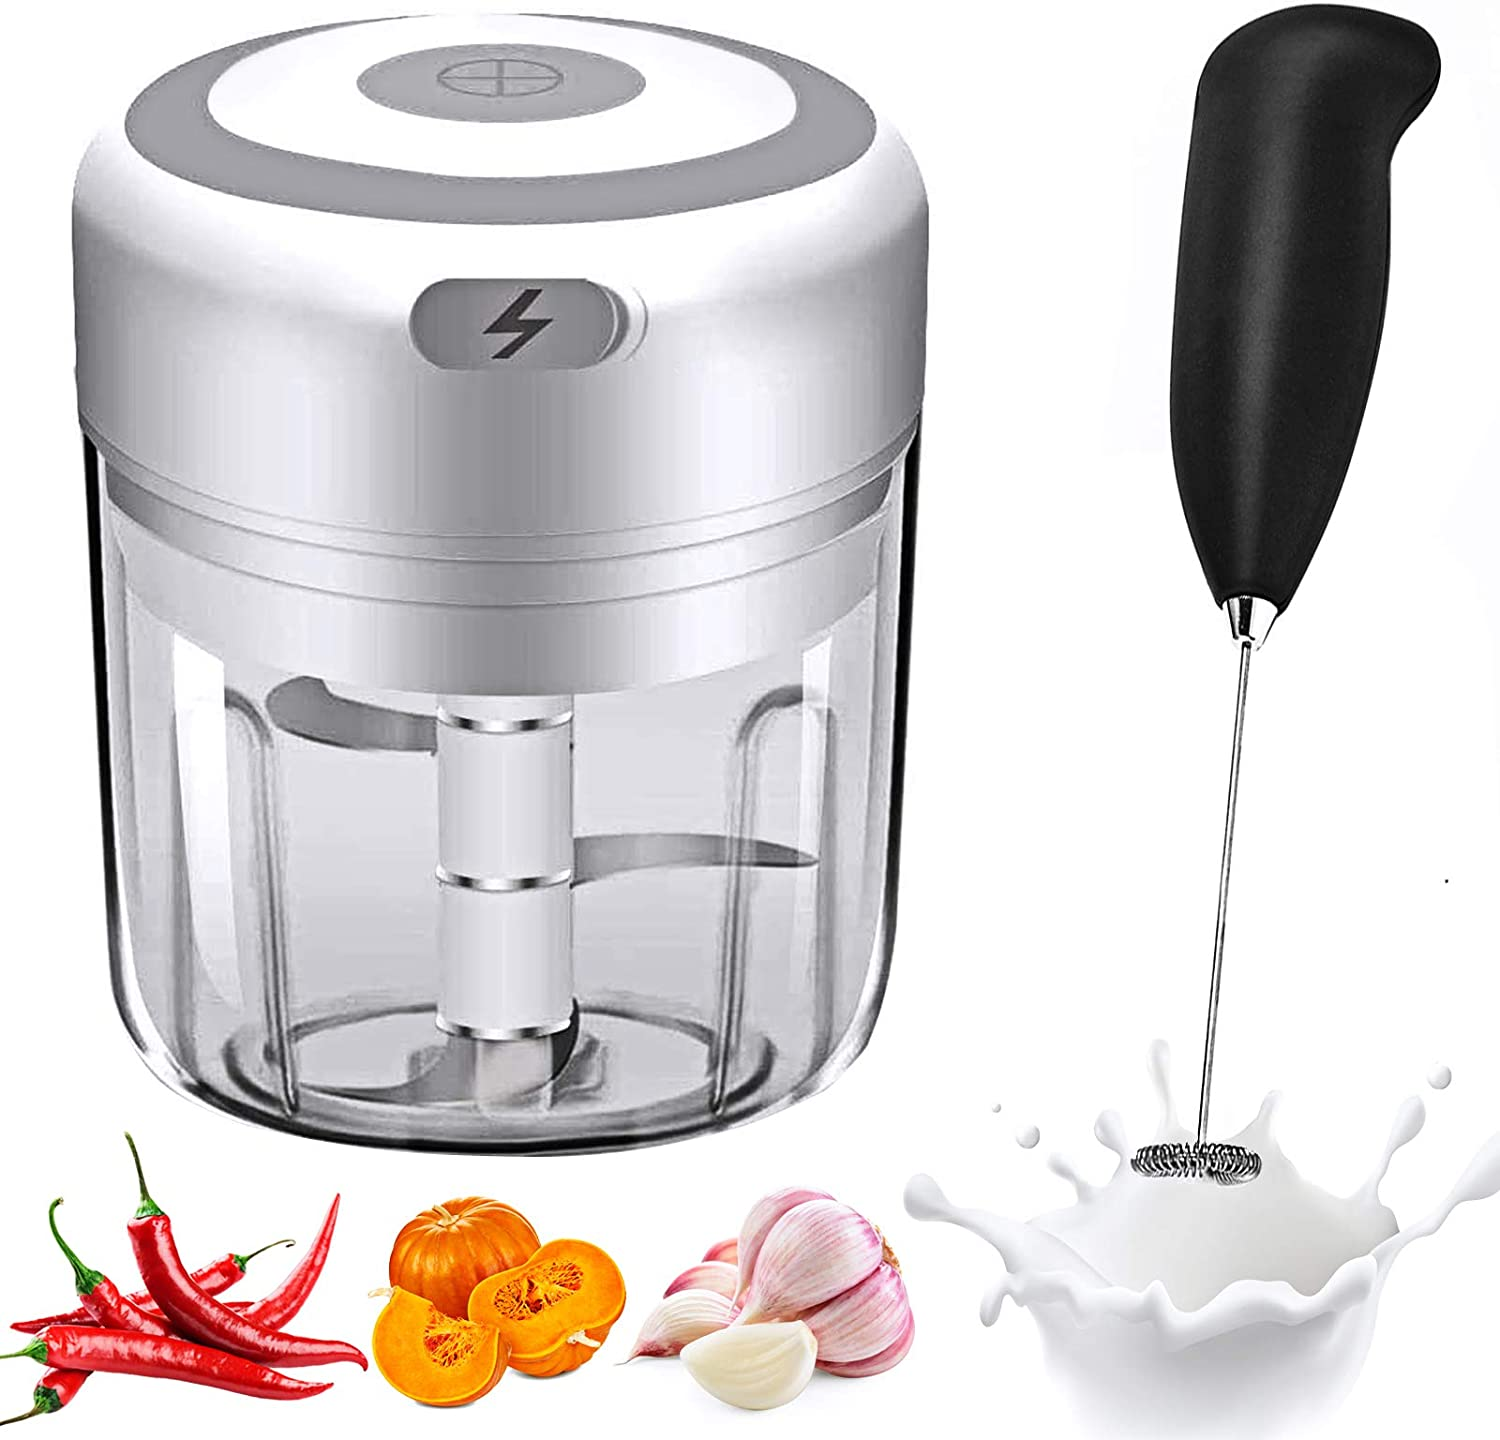 Electric Mini Garlic Chopper, Food Slicer And Chopper, Portable Garlic Blender Mini Chopper Food Processor For Pepper Chili Vegetable Nuts Meat with Frother (250 ml)